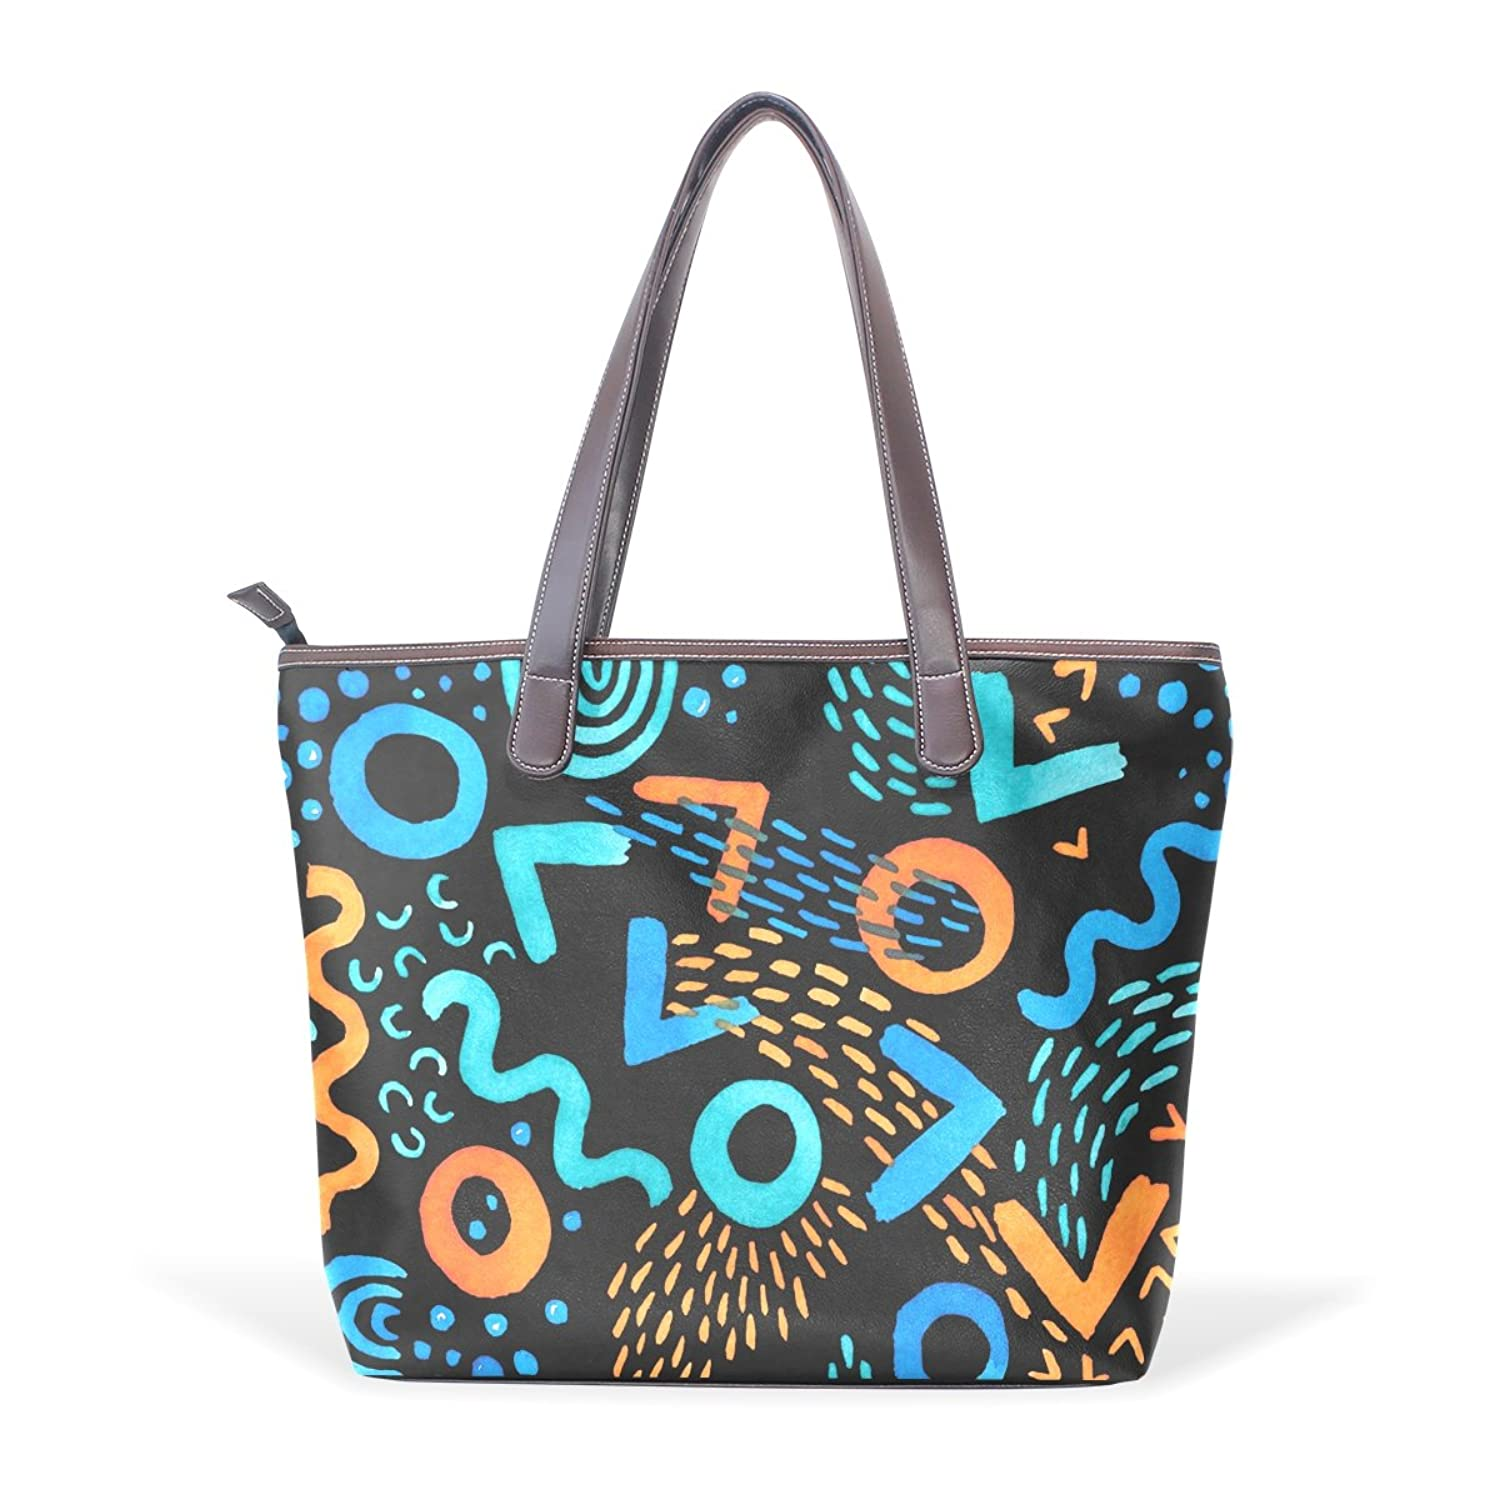 Womens Leather Tote Bag,Cartoon Hand Drawn Graphic Fresh Design,Large Handbag